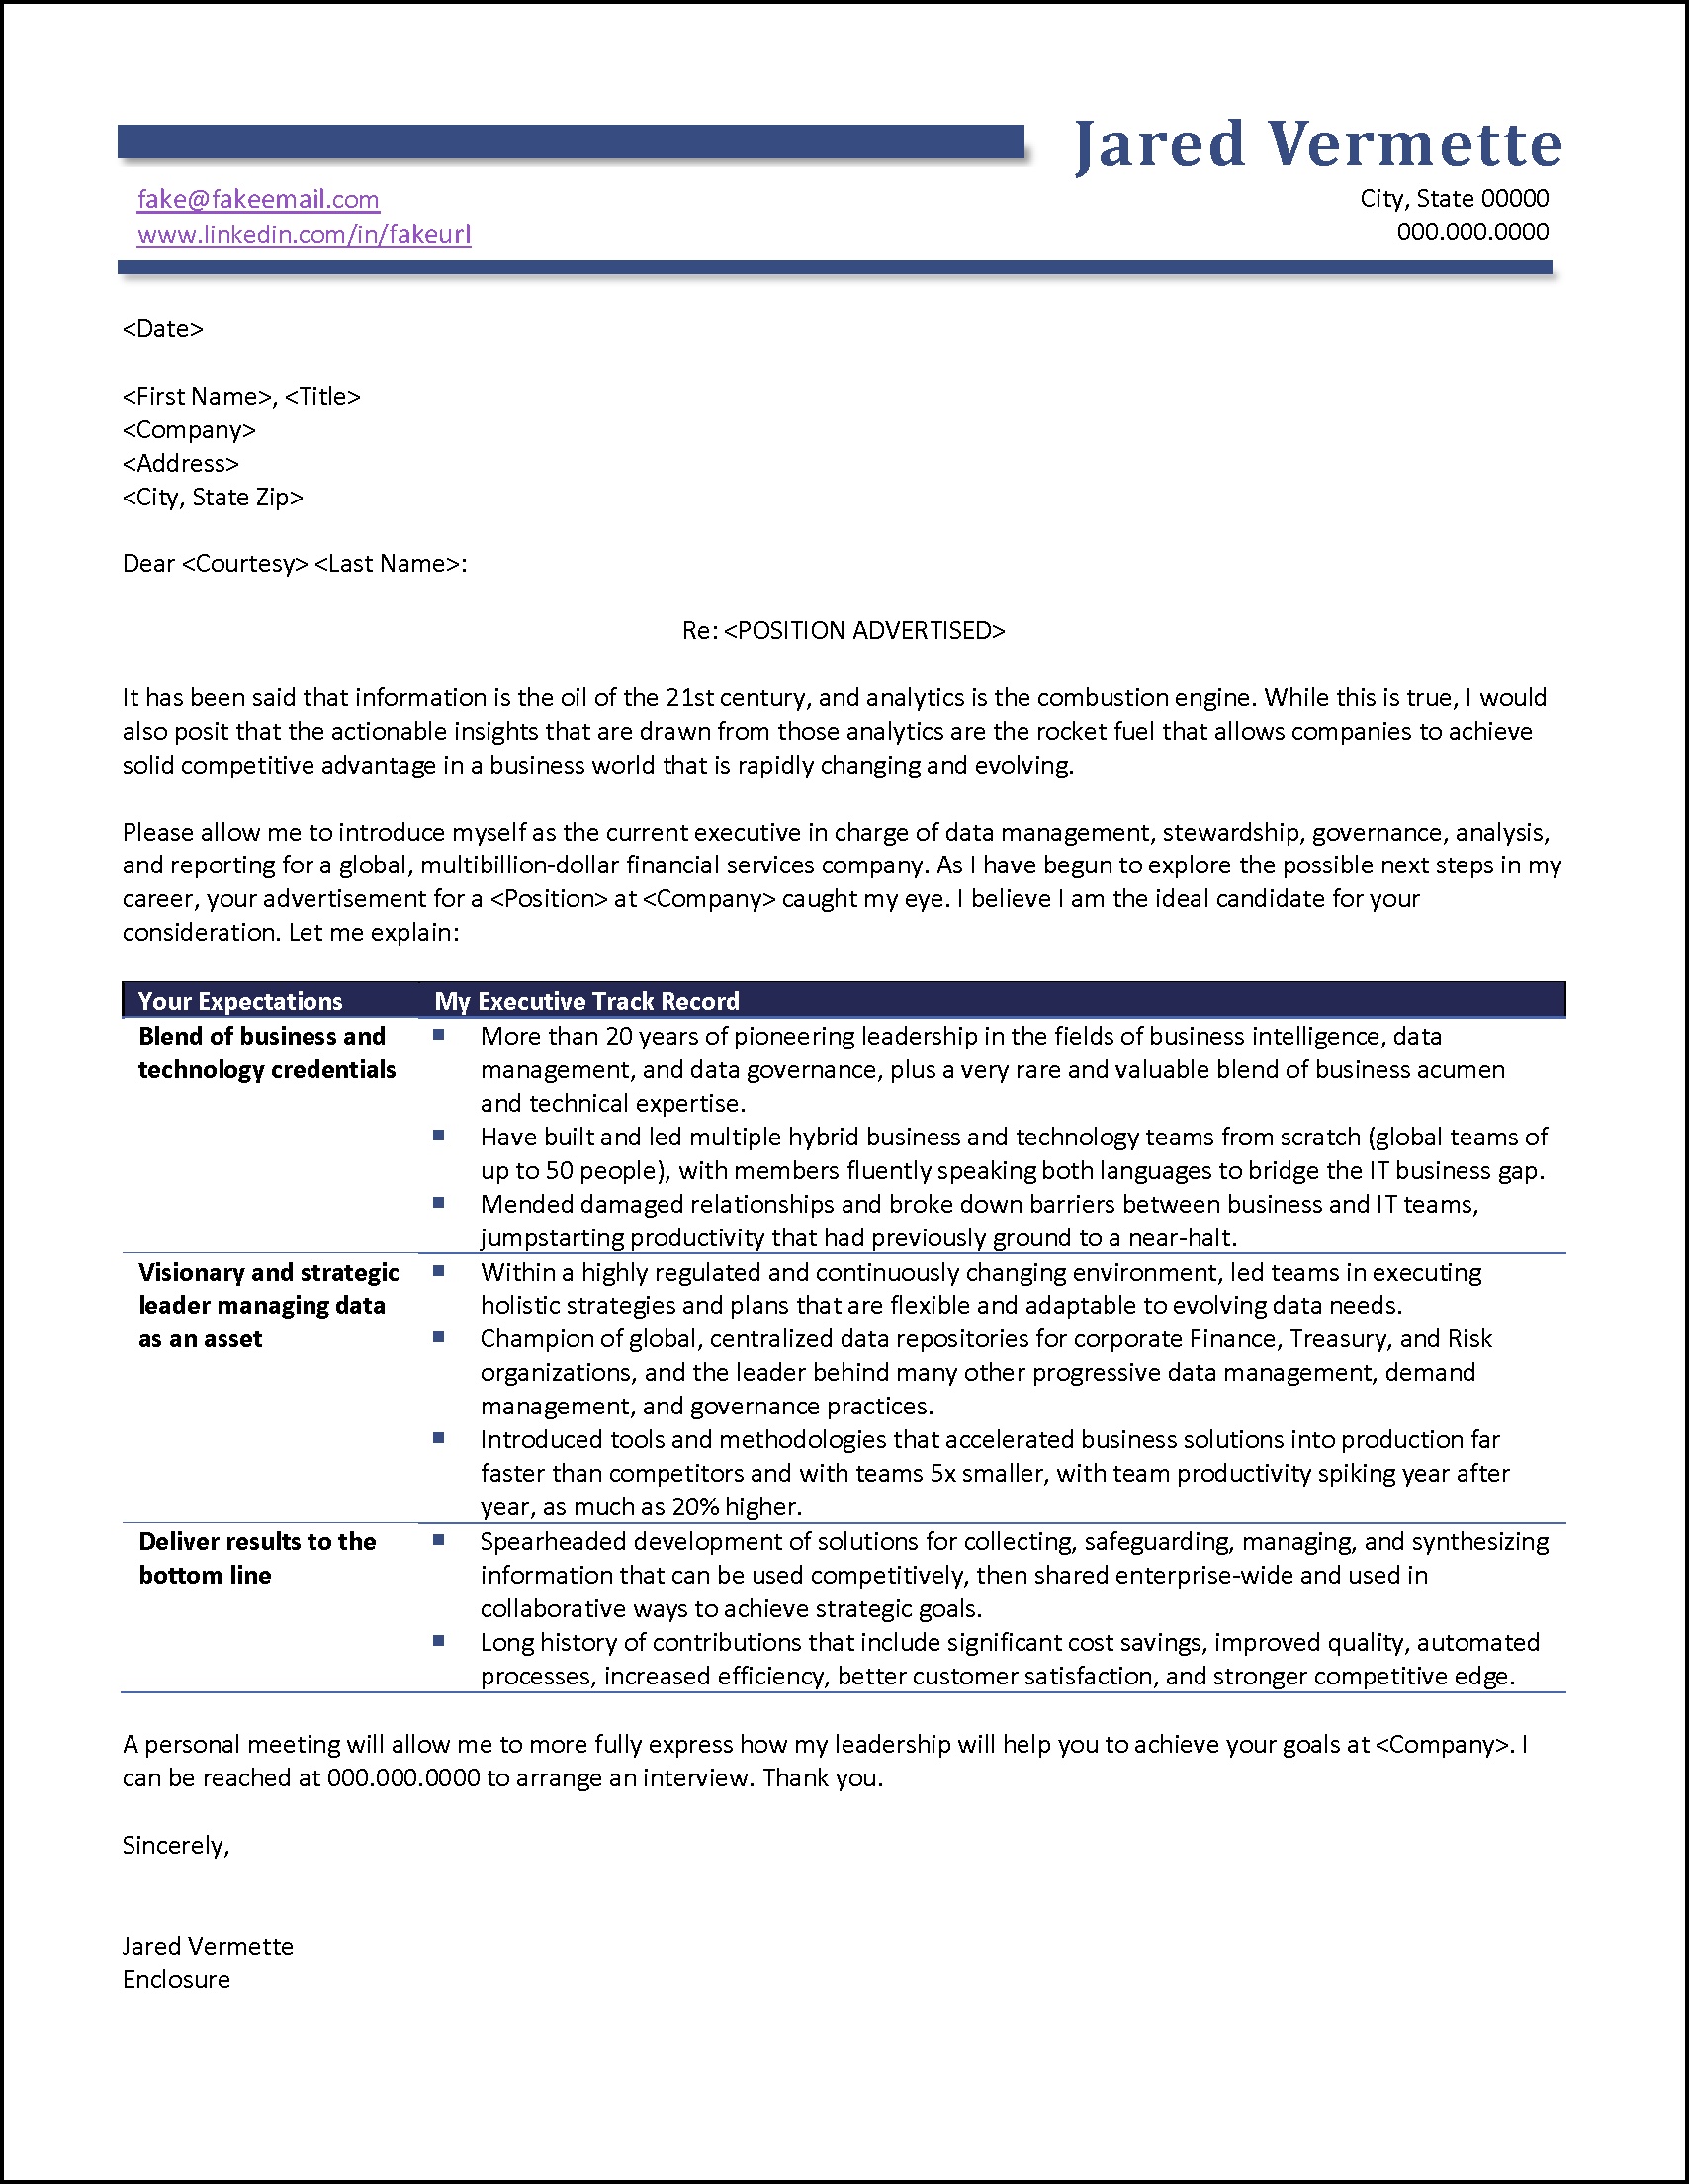 Job Ad Response Cover Letter Example